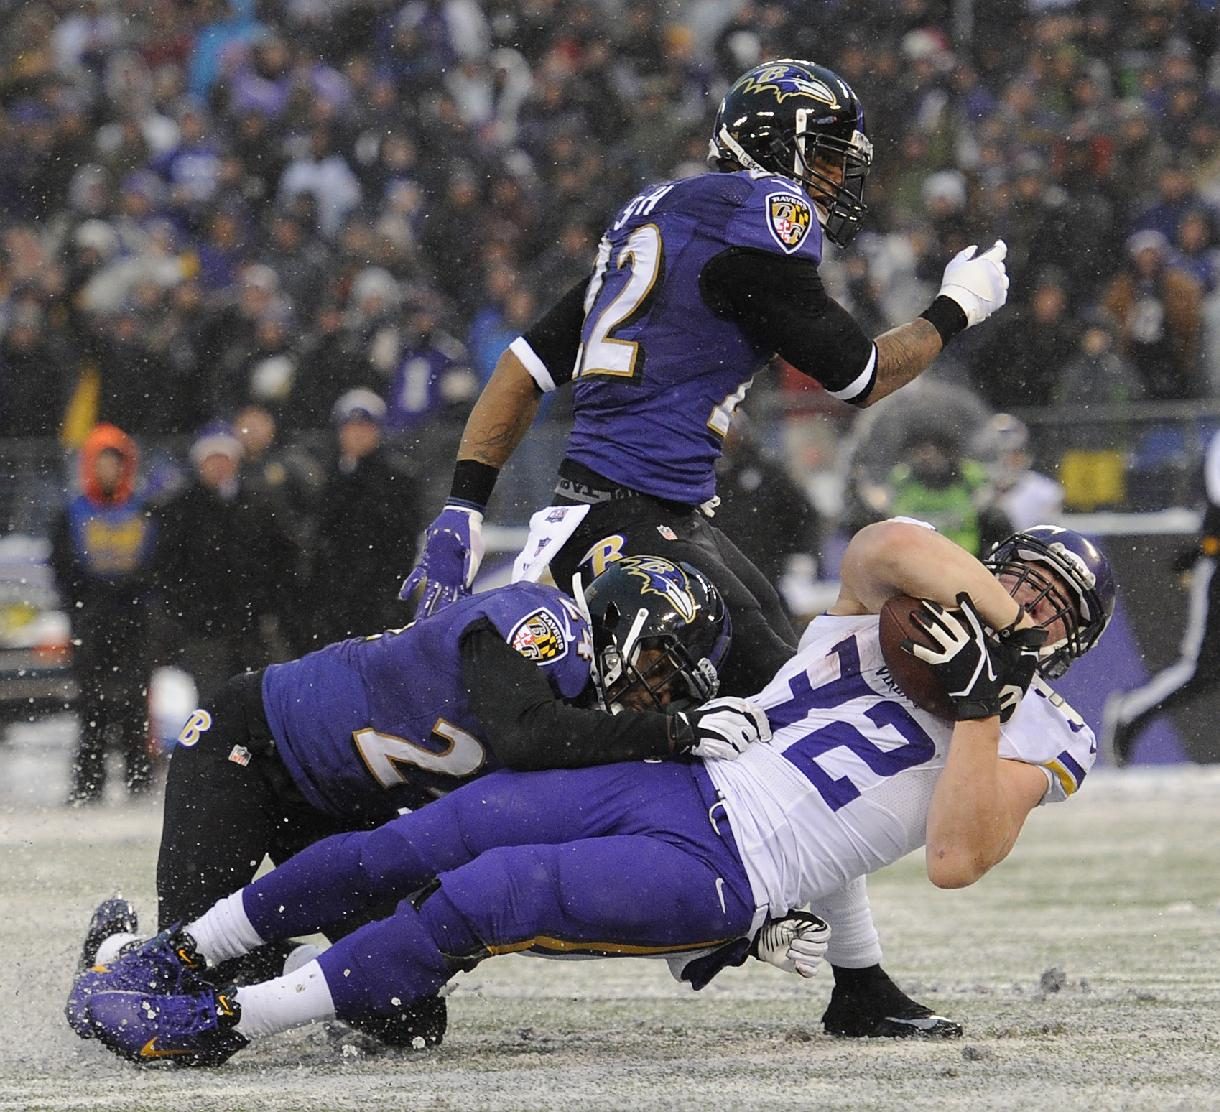 Minnesota Vikings running back Toby Gerhart, bottom right, falls into the end zone for a touchdown in front of Baltimore Ravens cornerbacks Corey Graham, bottom left, and Jimmy Smith in the second half of an NFL football game, Sunday, Dec. 8, 2013, in Baltimore